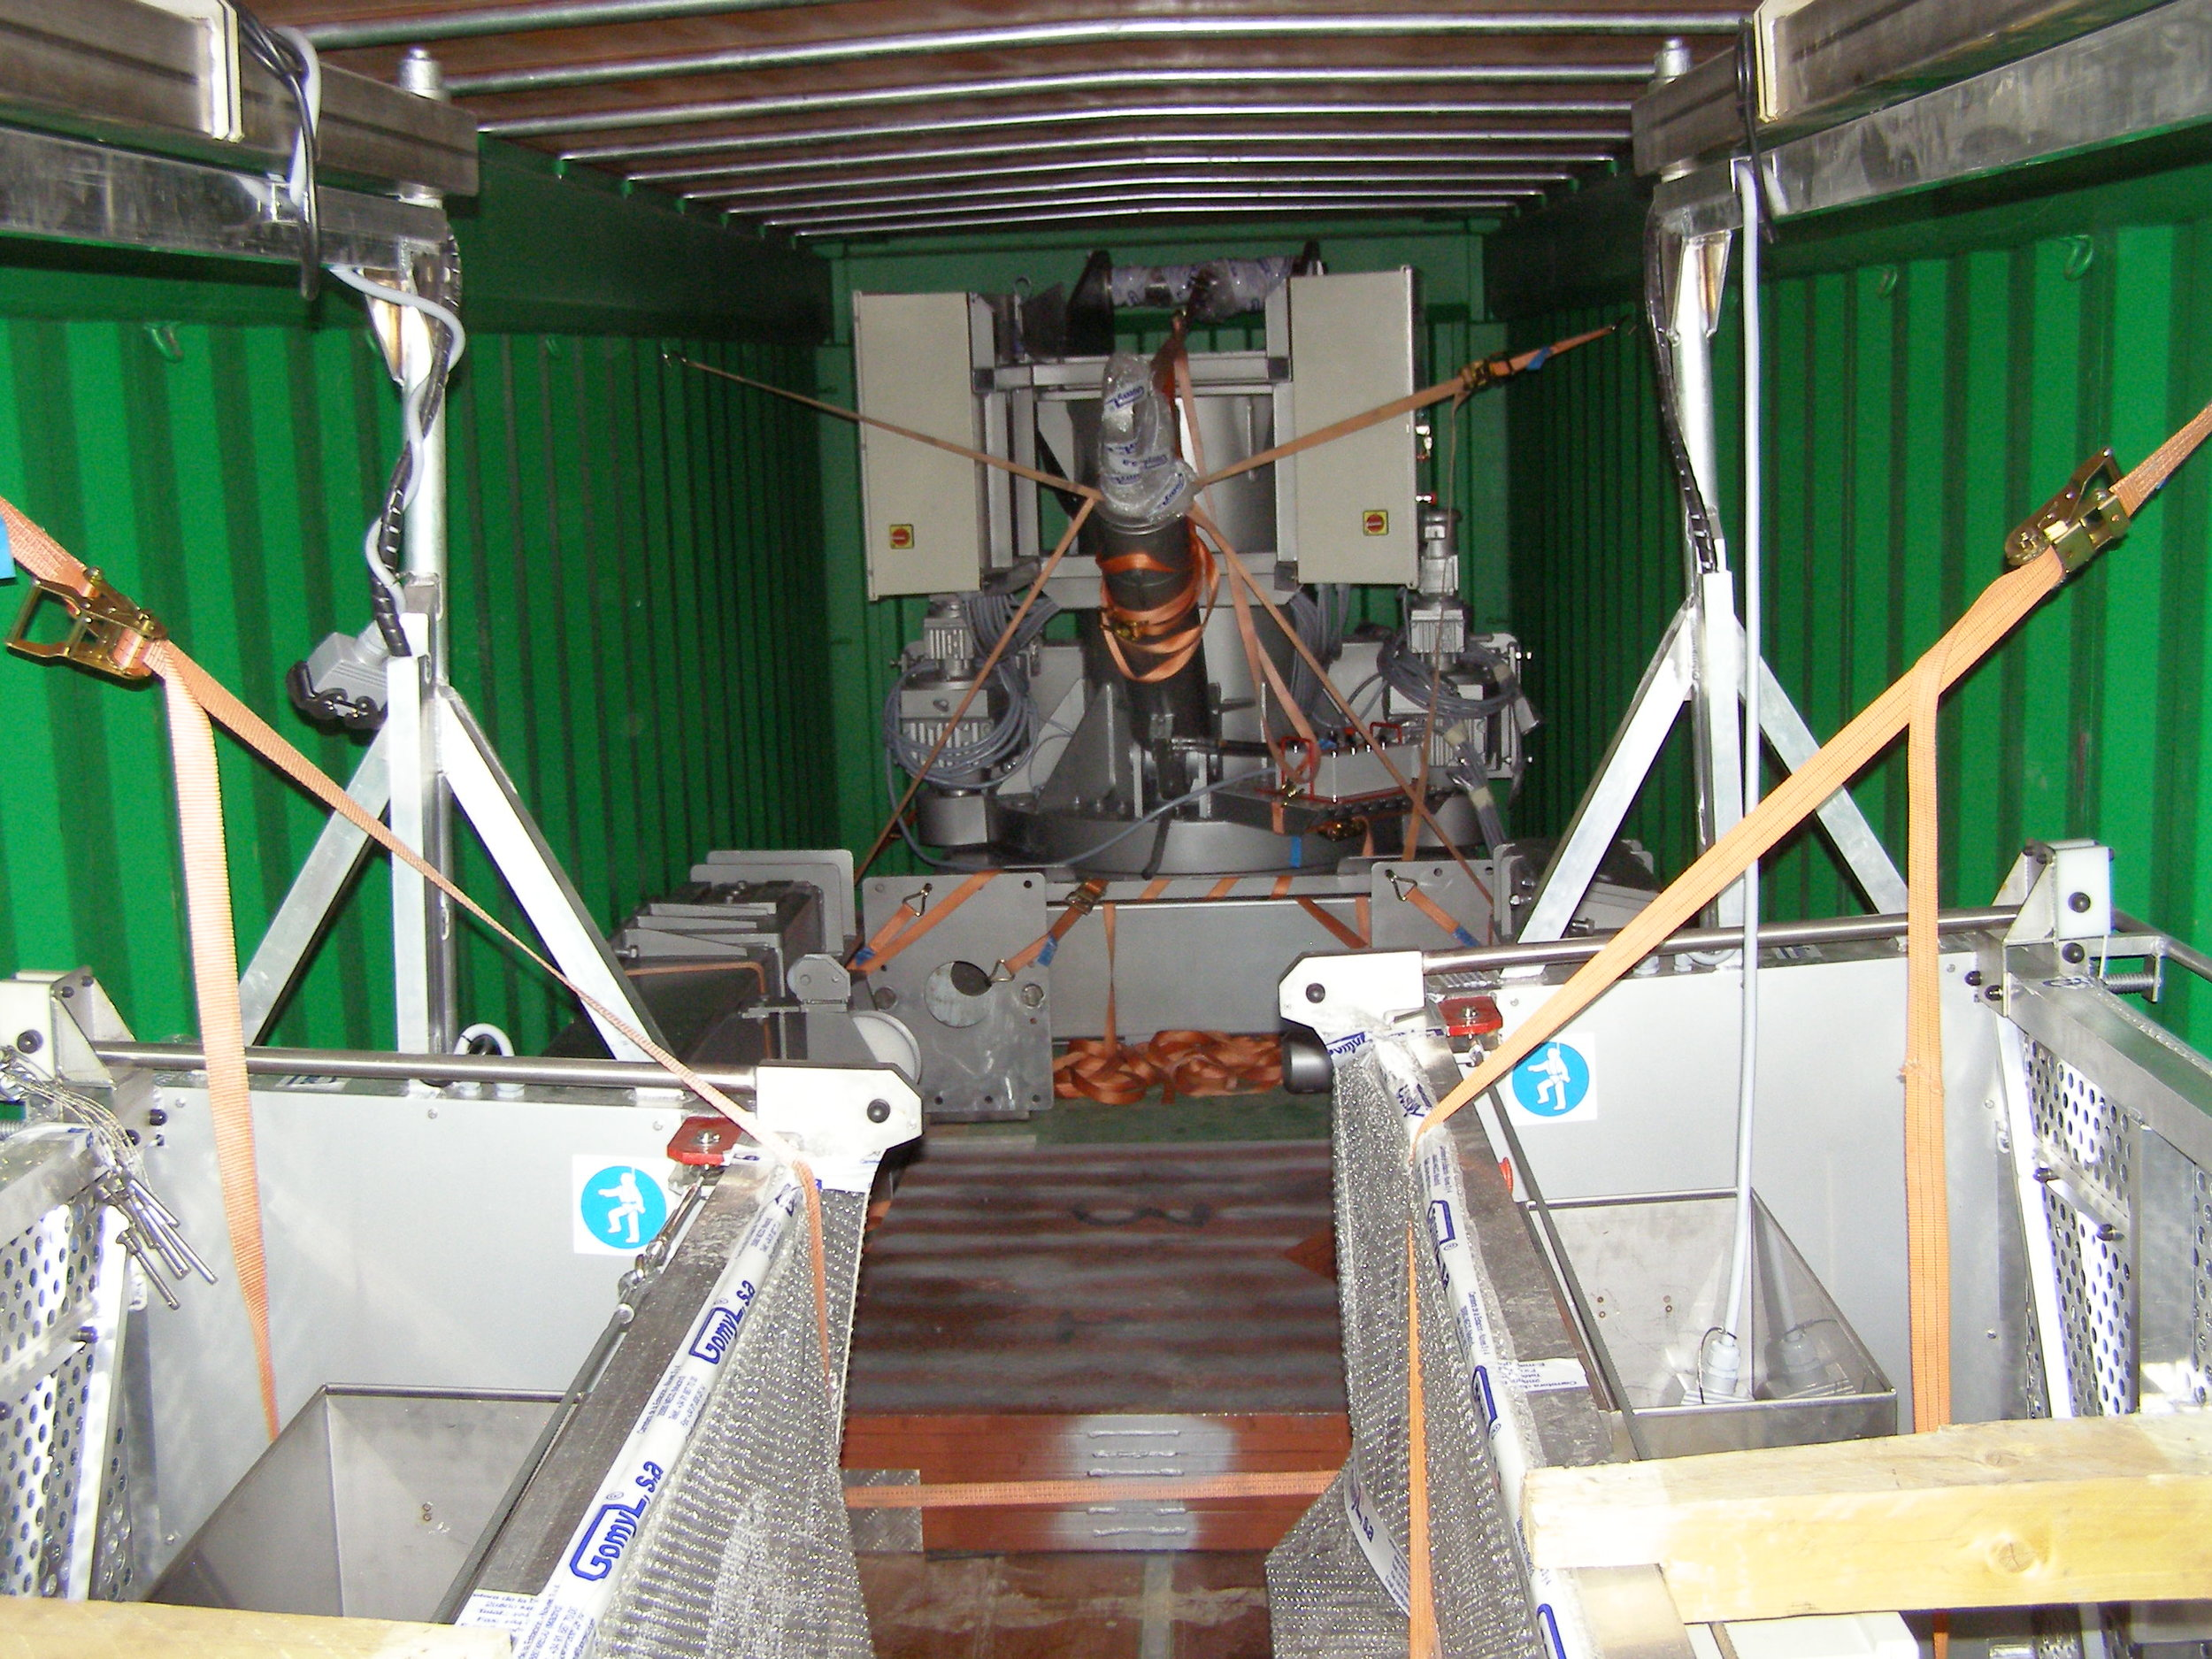 Step 4.  The BMU was disassembled at the factory and shipped to the site in two containers.